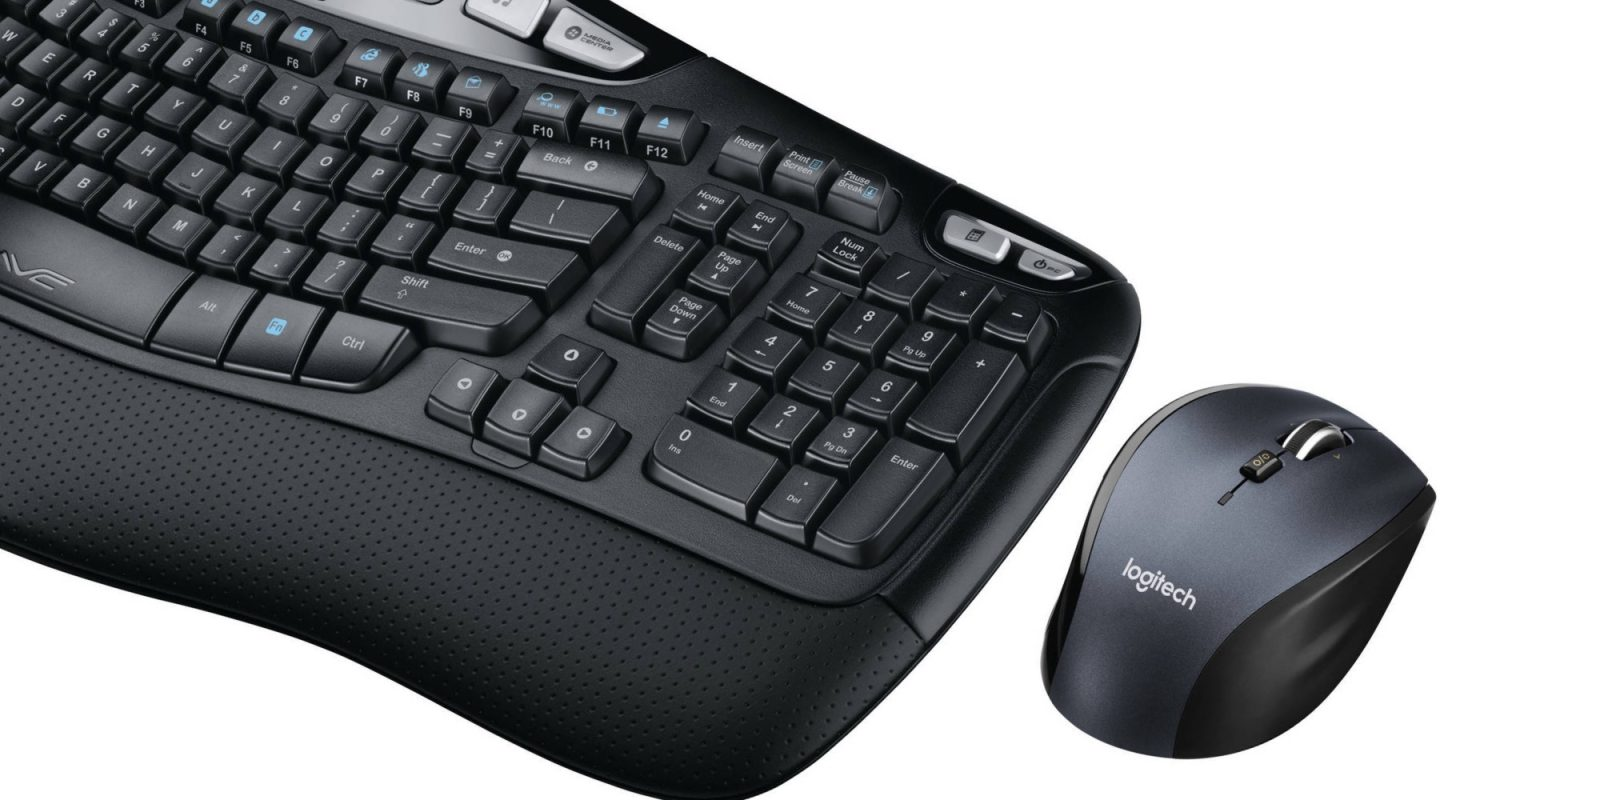 31bd958a142 Ergonomic design highlights Logitech's Comfort Wave Keyboard and Mouse at  $35 (30% off)